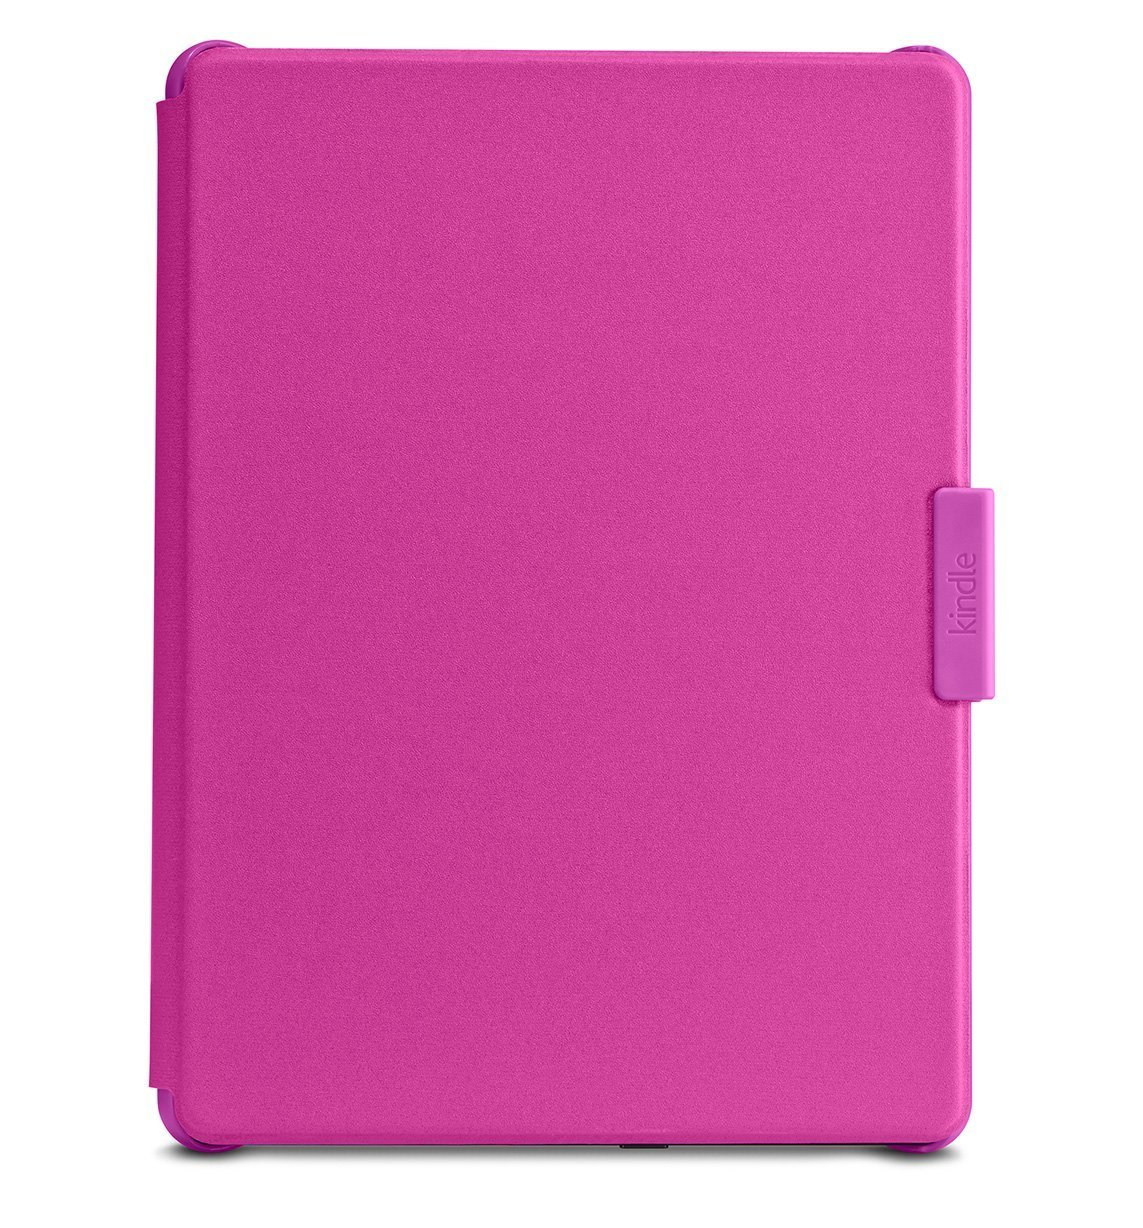 Чехол обложка Amazon Cover Case for All-New Kindle 8 (2016) Magenta. Фото N2